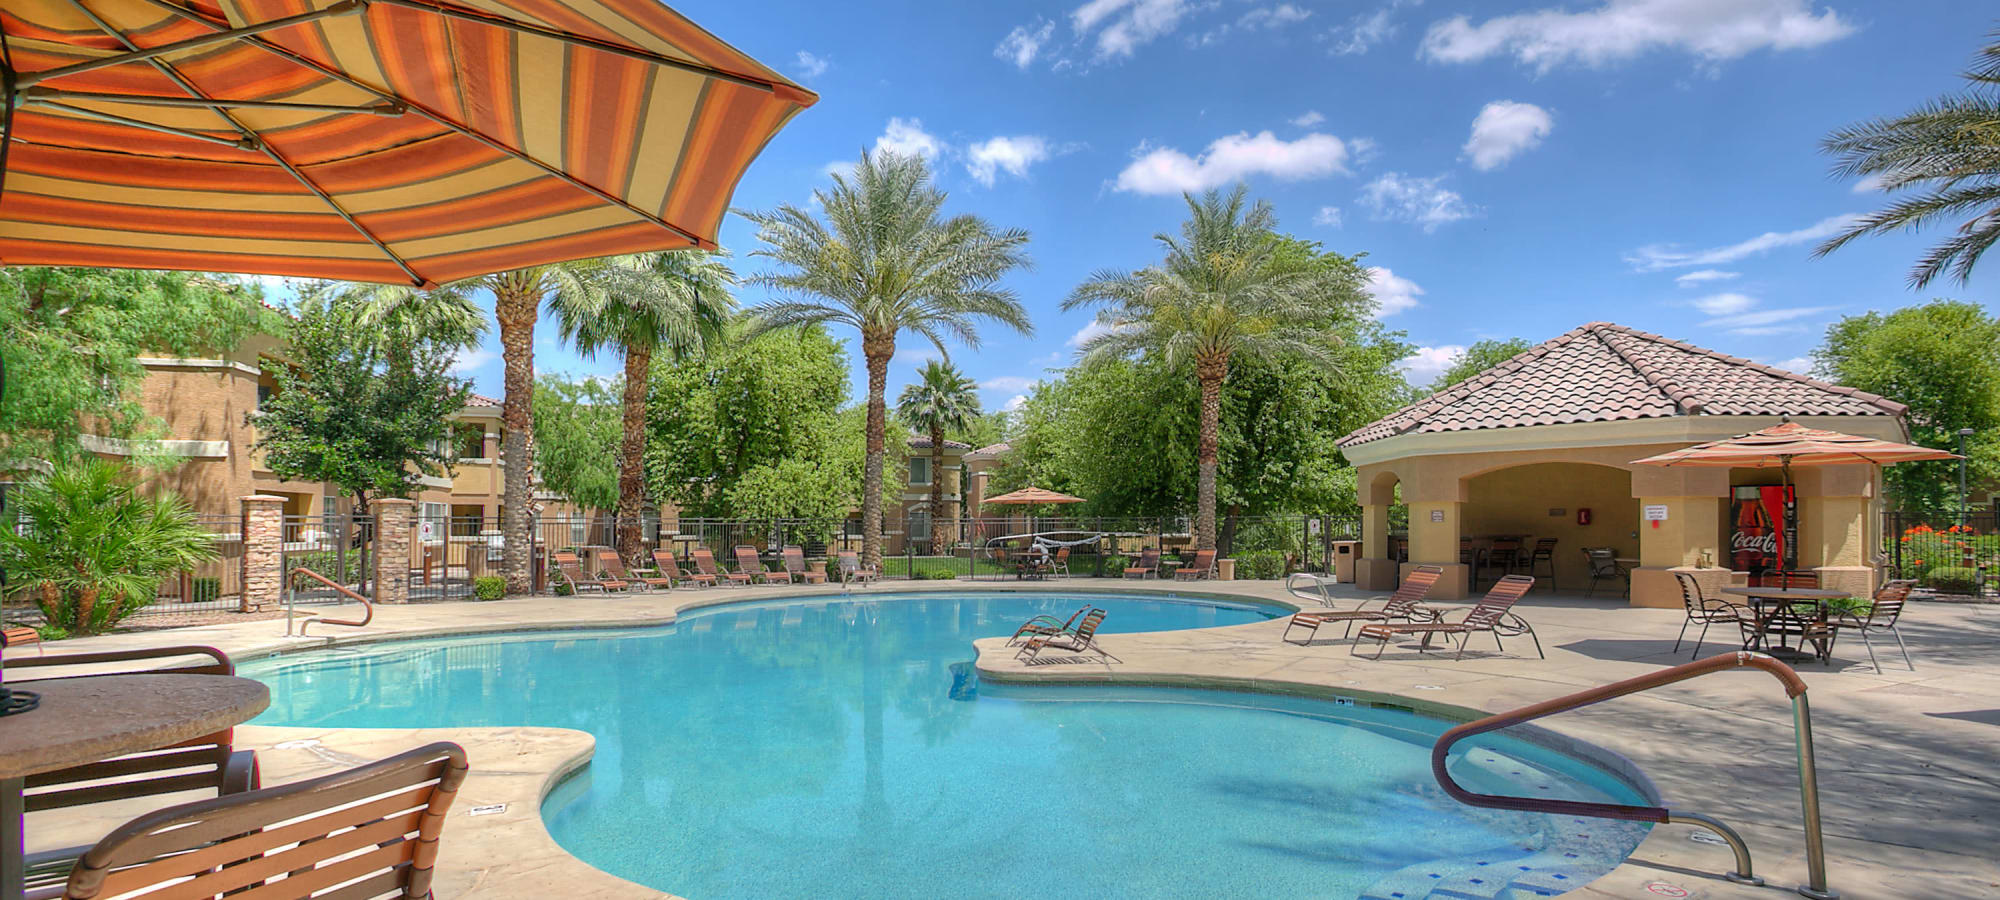 Resort style swimming pool with covered lounge chairs at Remington Ranch in Litchfield Park, Arizona